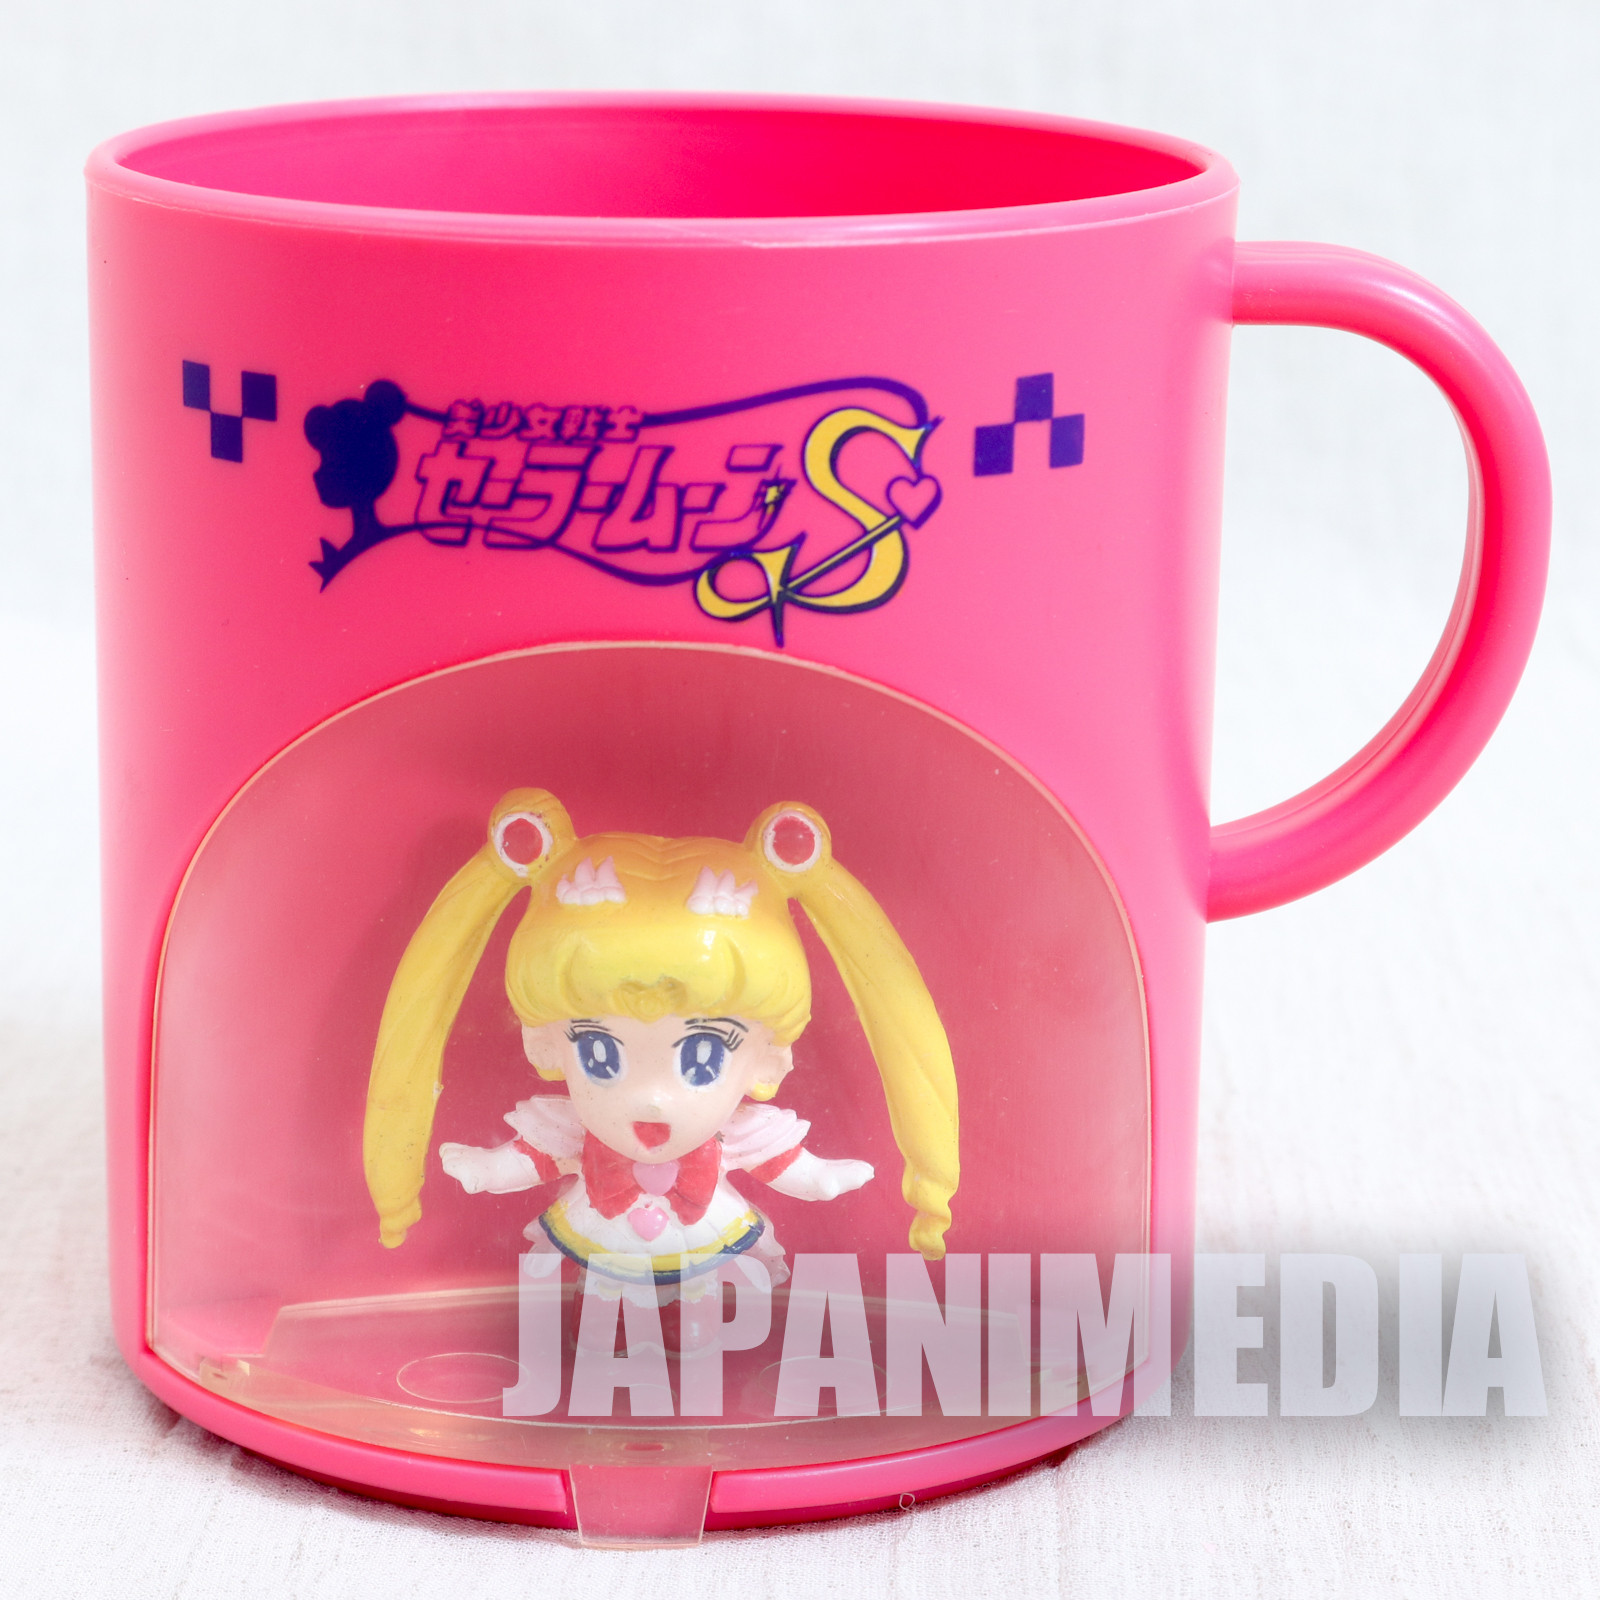 Sailor Moon S Sailor Moon (Usagi Tsukino) Figure in Plastic Mug Banpresto 1994 JAPAN ANIME MANGA